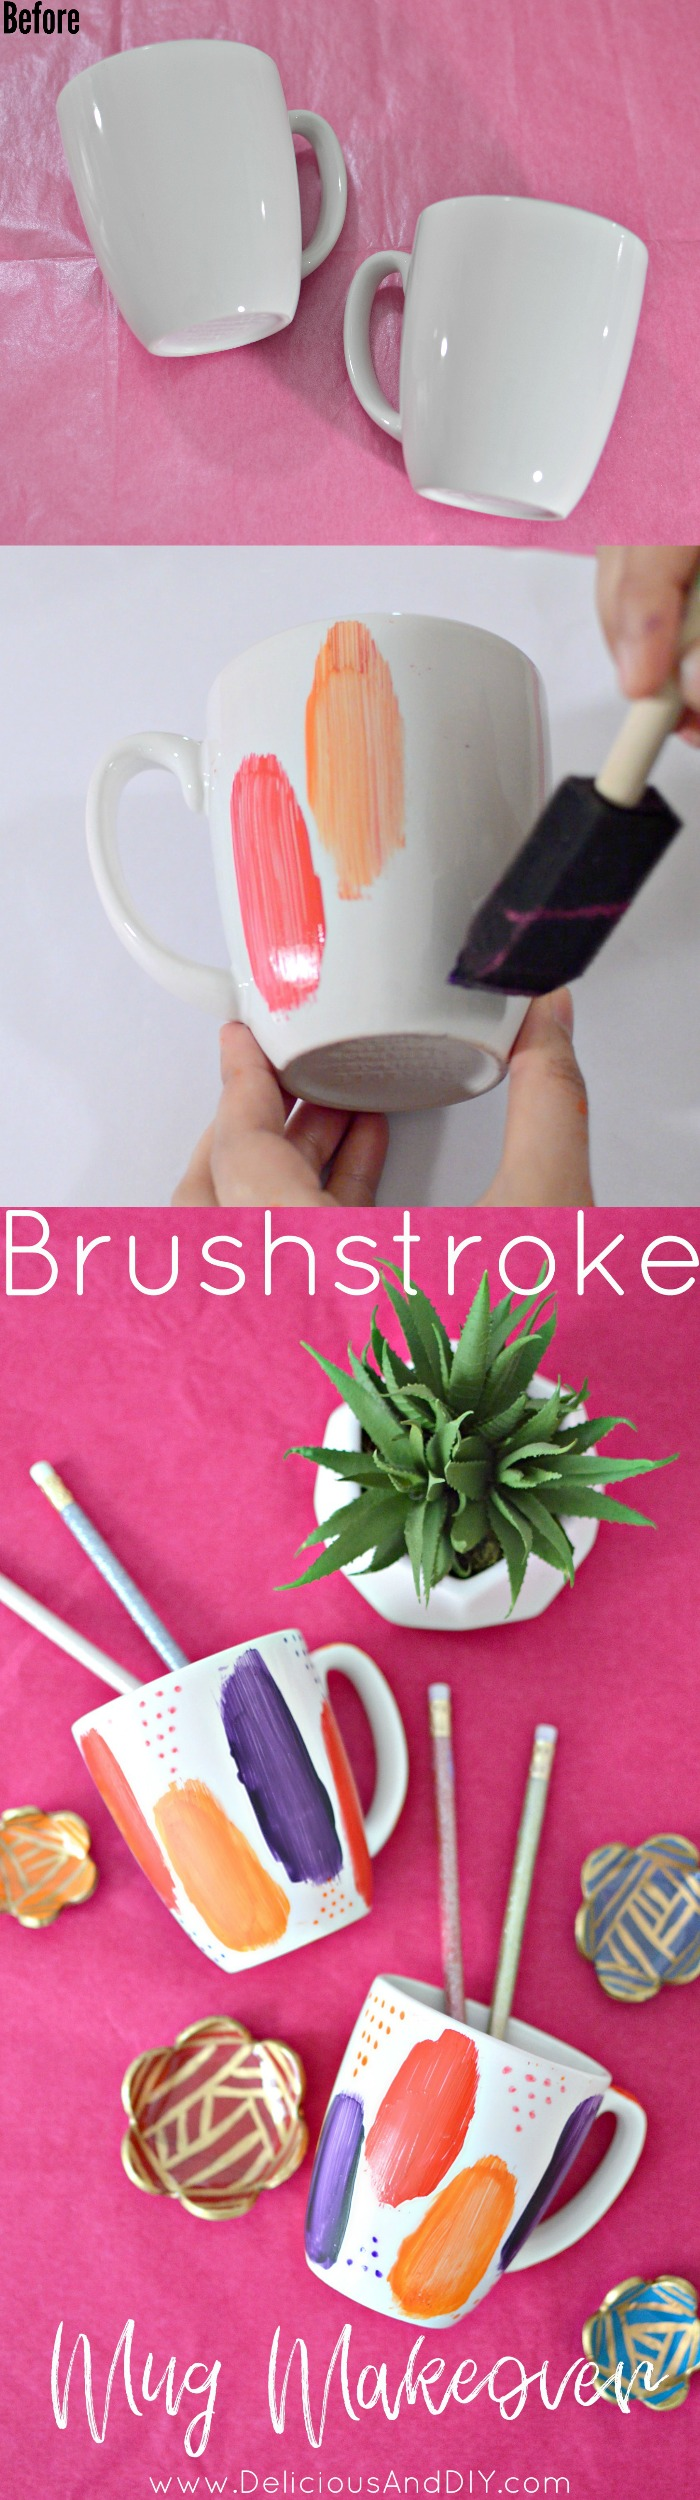 Hand painted Brushstroke Mug Makeover using bright colors to update those plain mugs into an eye catching one| Hand painted Mugs| Brushstroke Mug Makeover| DIY Craft Projects| DIY Ideas| Recycled Mugs and painted Ideas| DIY Home Decor| Brushstroke Design on Mugs